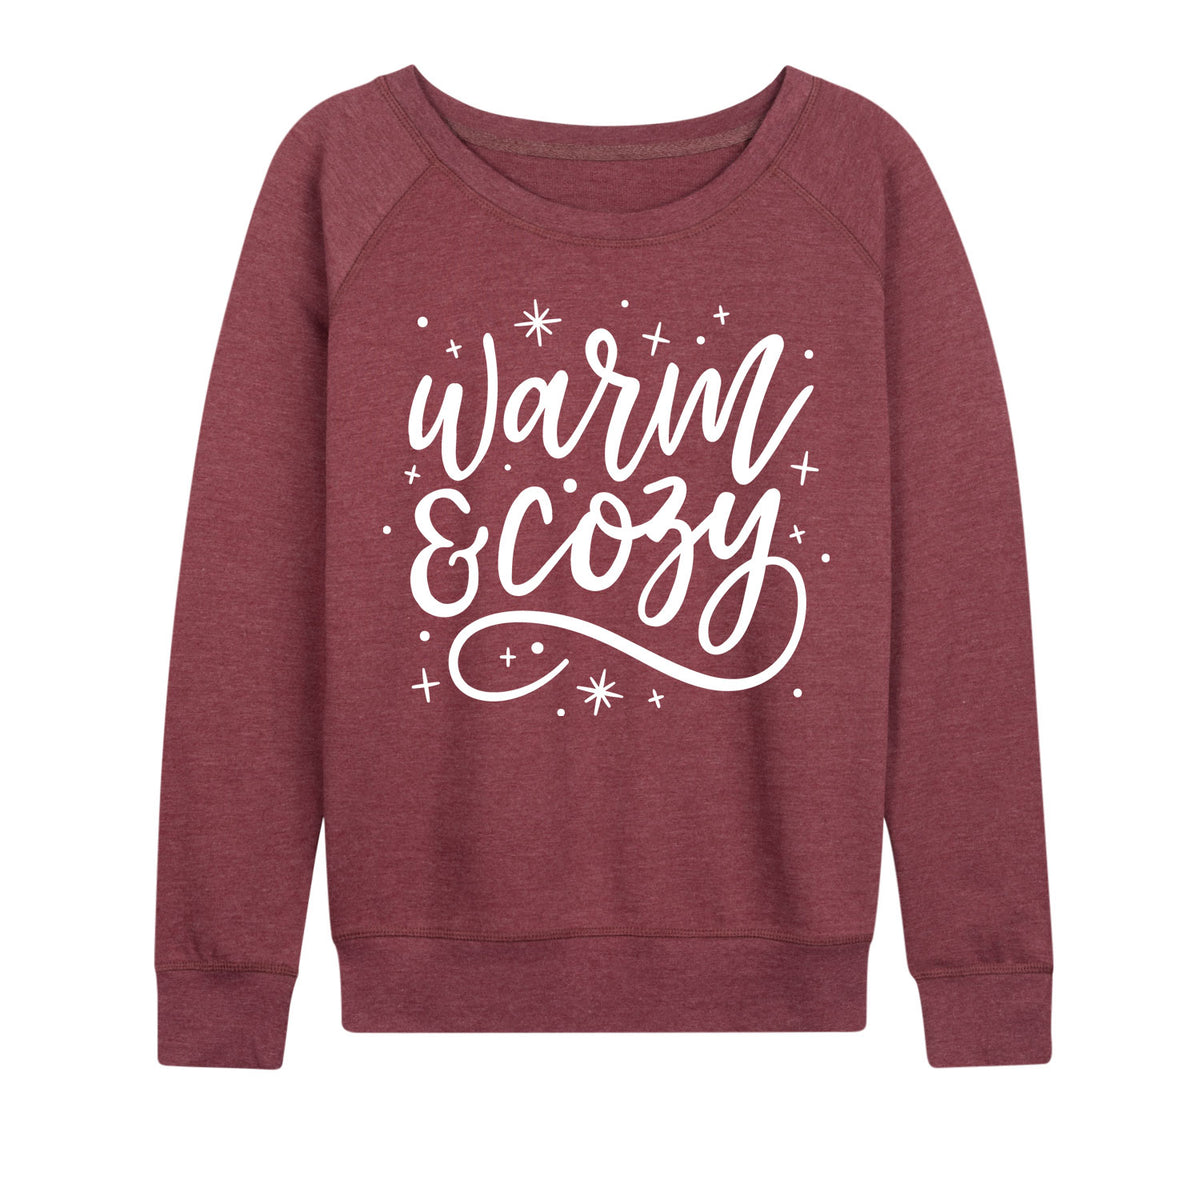 Warm And Cozy - Women's Slouchy